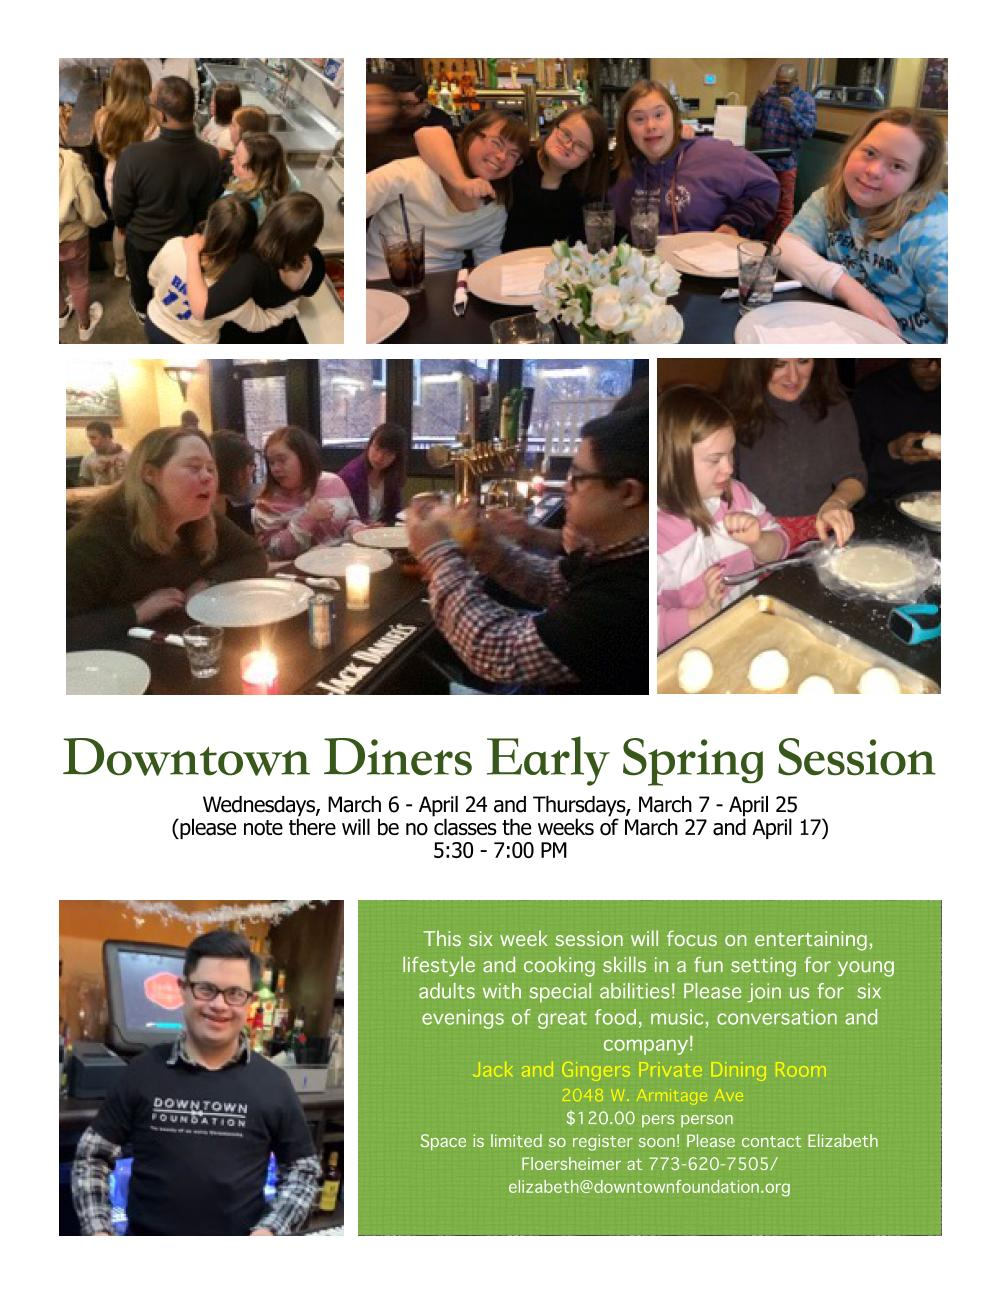 spring session - Wednesday March 6th through Wednesday April 25th from 5:30-7:00PMJack & Ginger's (map)This six week session will focus on entertaining, lifestyle and cooking skills in a fun setting for young adults with special abilities! Please join us for six evenings of great food, music, conversation and company!$120.00 Per PersonSpace is limited so register soon! Please contactElizabeth Floersheimer at 773-620-7505elizabeth@downtownfoundation.org